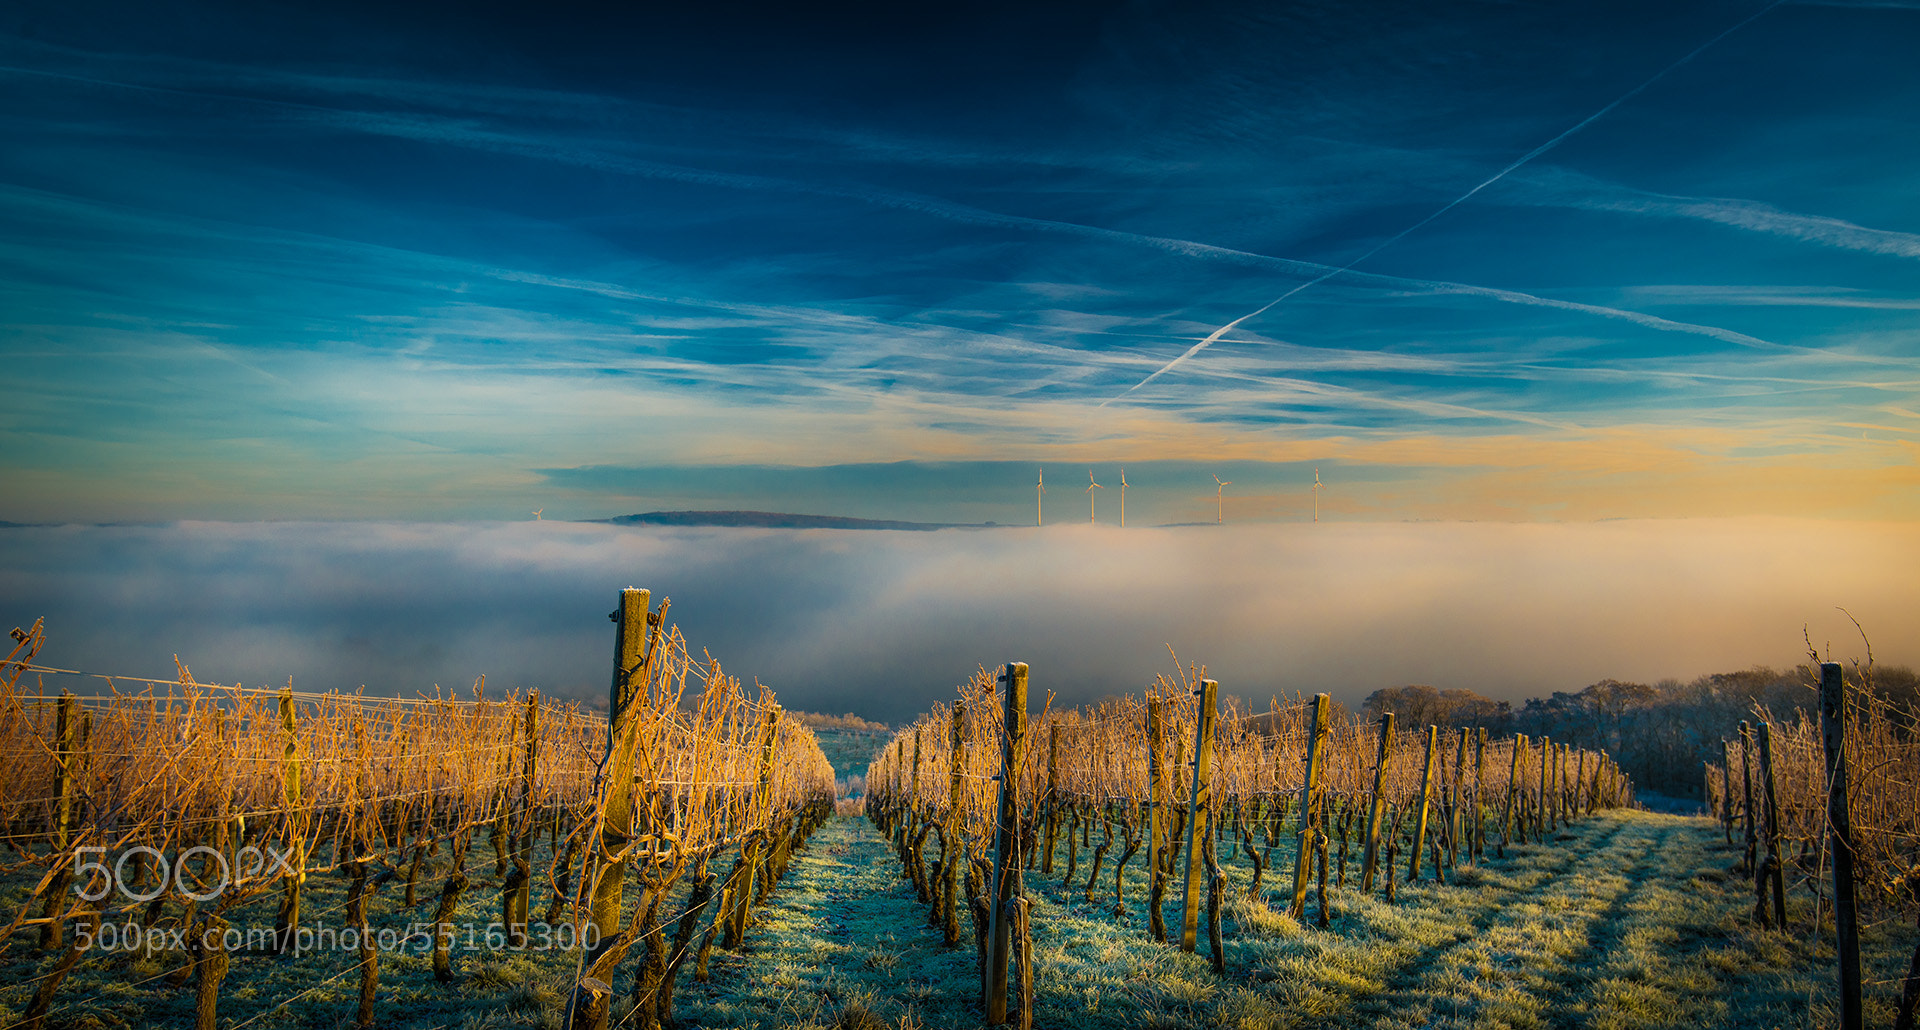 Photograph Frozen Vineyards by Rolf Nachbar on 500px